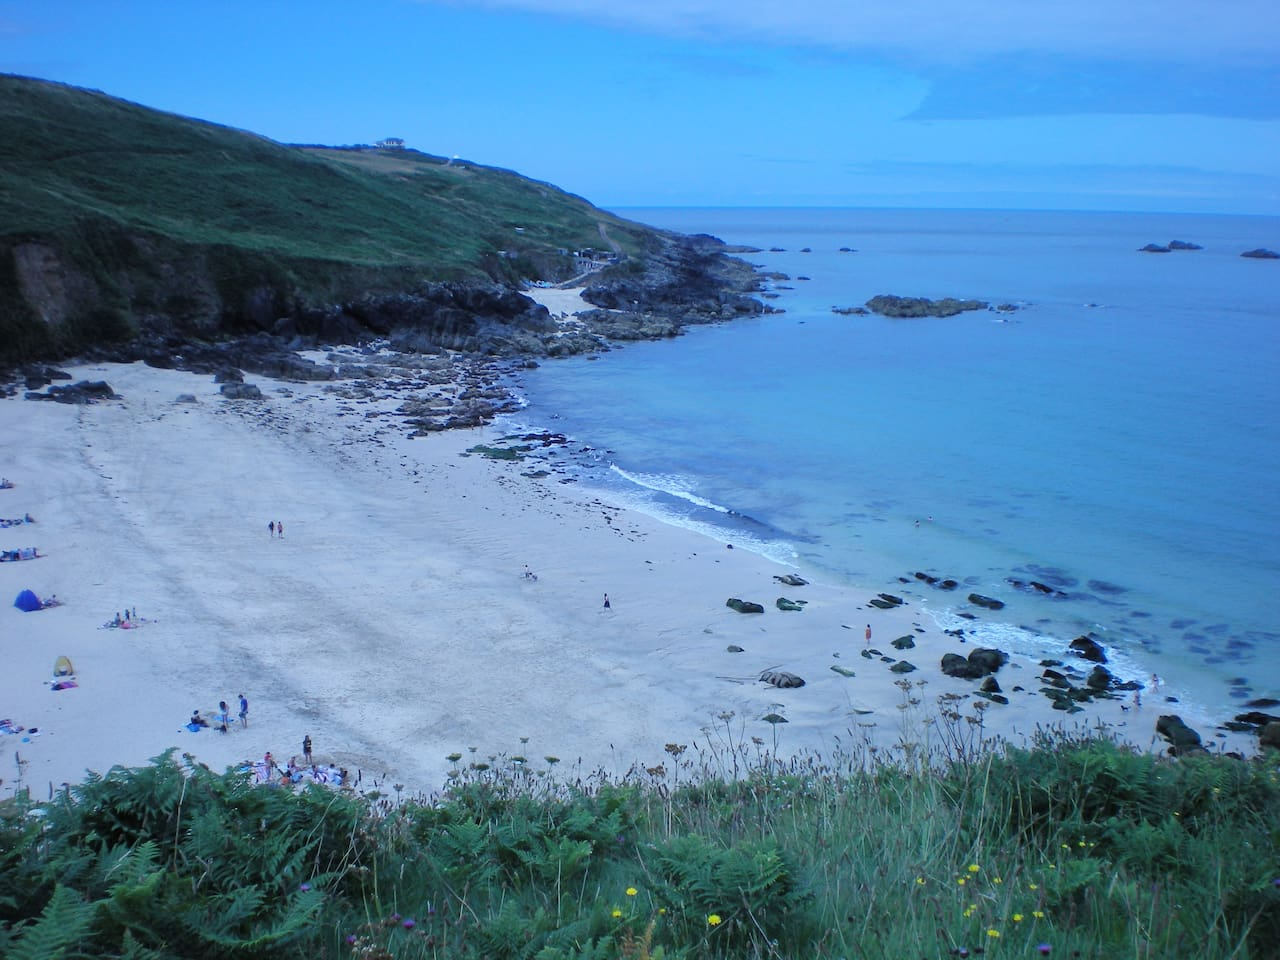 The lovely Portheras Cove, which is accessed by a quiet lane, a farmyard and then a grass track down the cliffs, just 3/4 mile from my house.